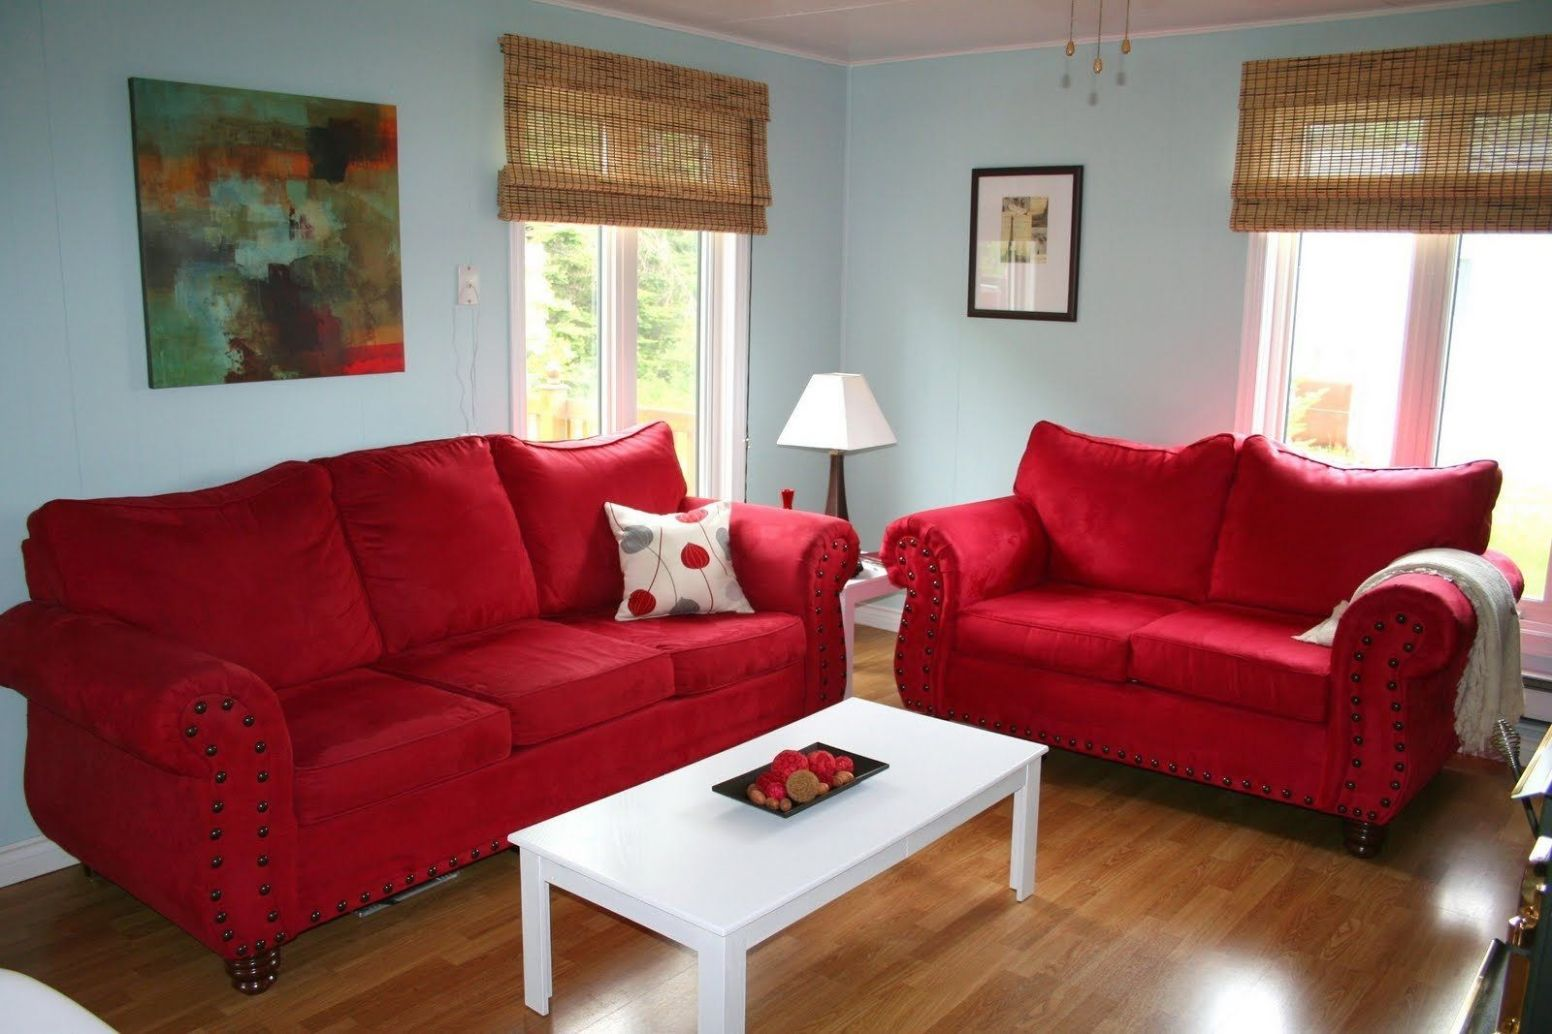 Blue Red Living Room Ideas (With images) | Red couch living room ..